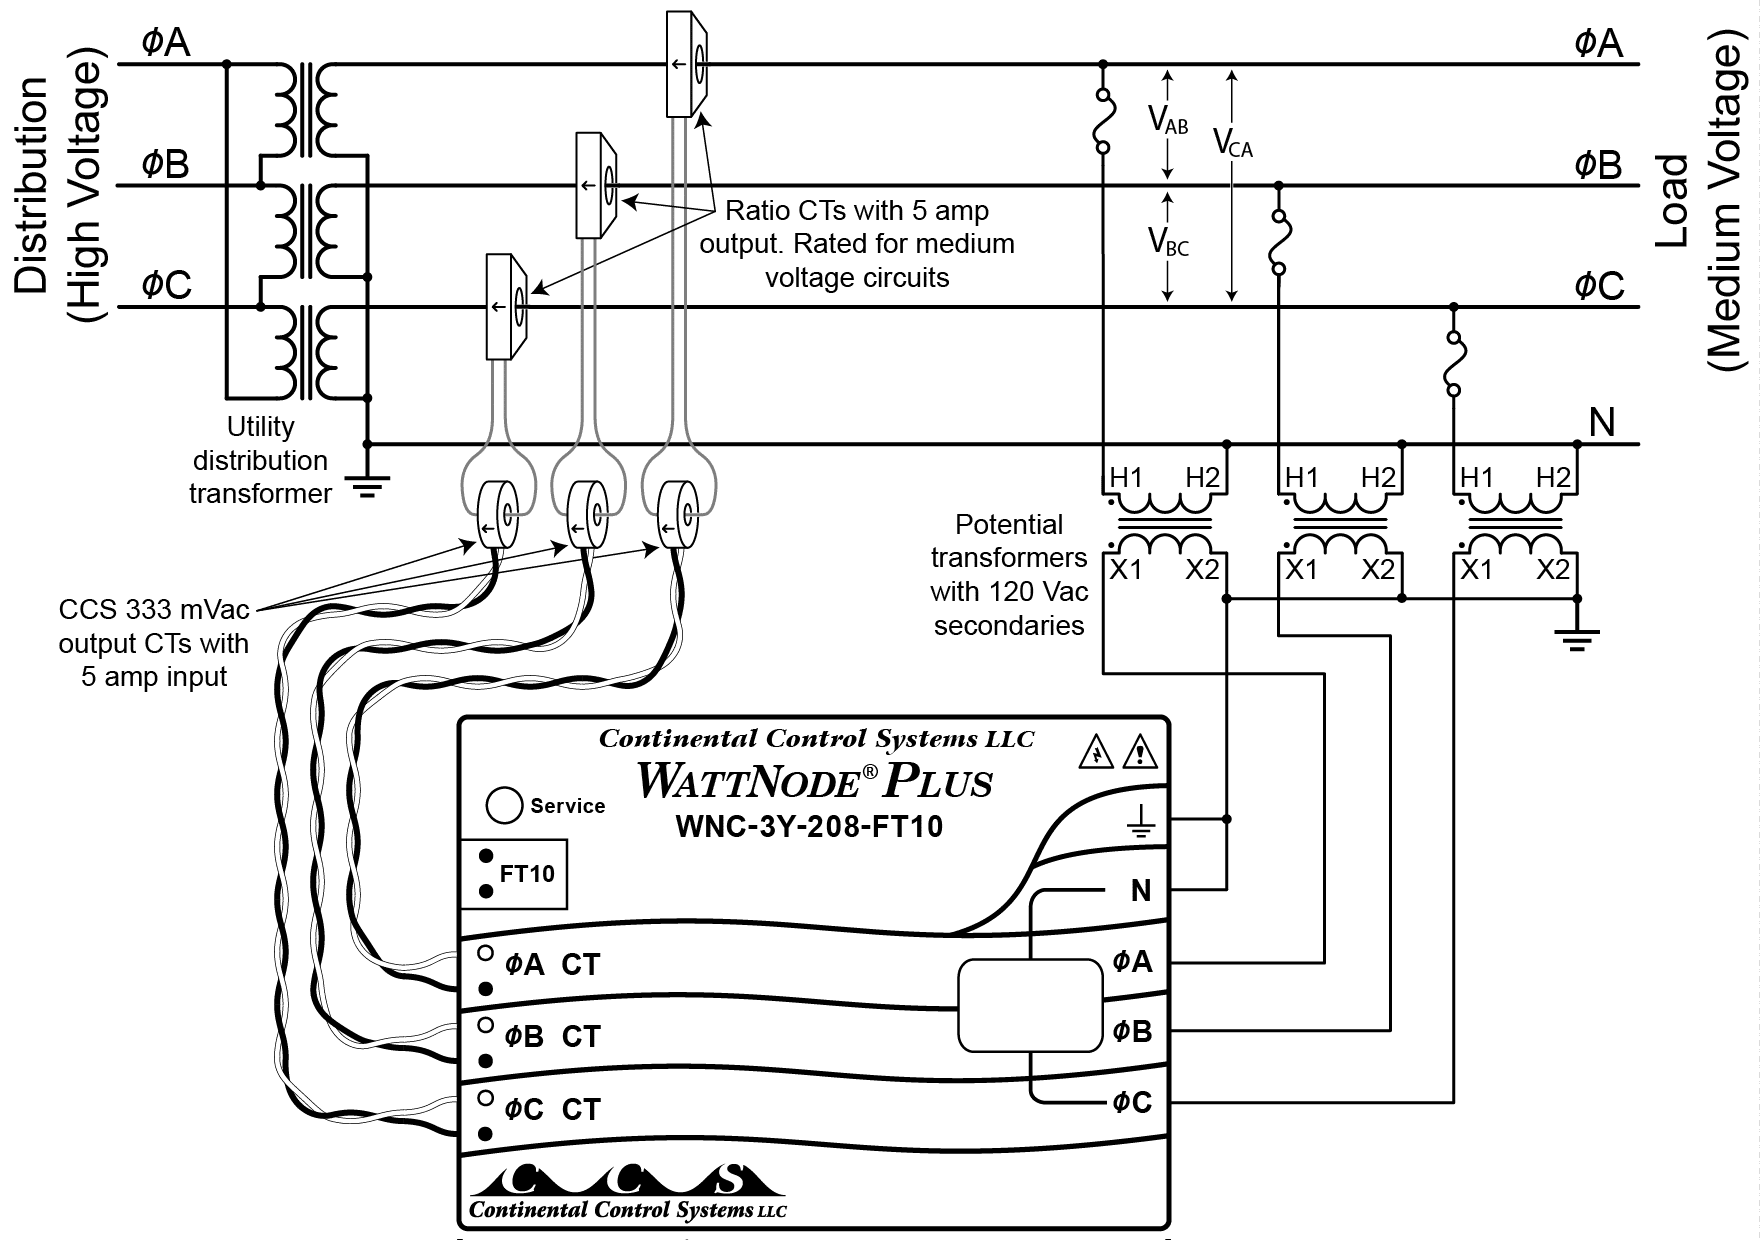 Potential Transformer Wiring Diagram - Wiring Diagram Features